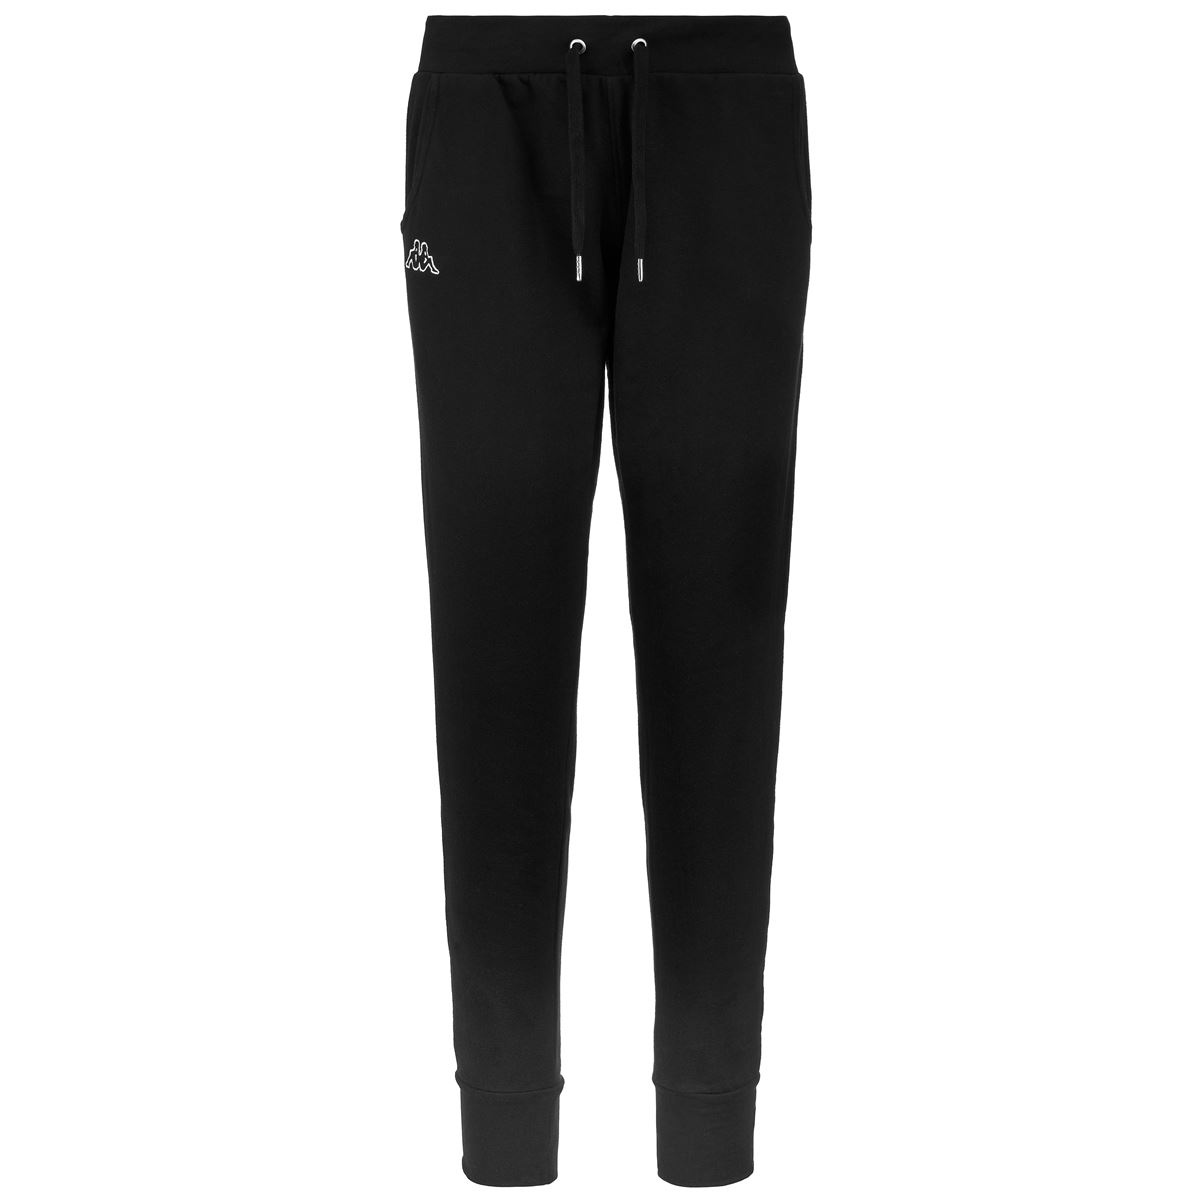 Kappa Pants Woman LOGO ZALIA Training Sport Trousers